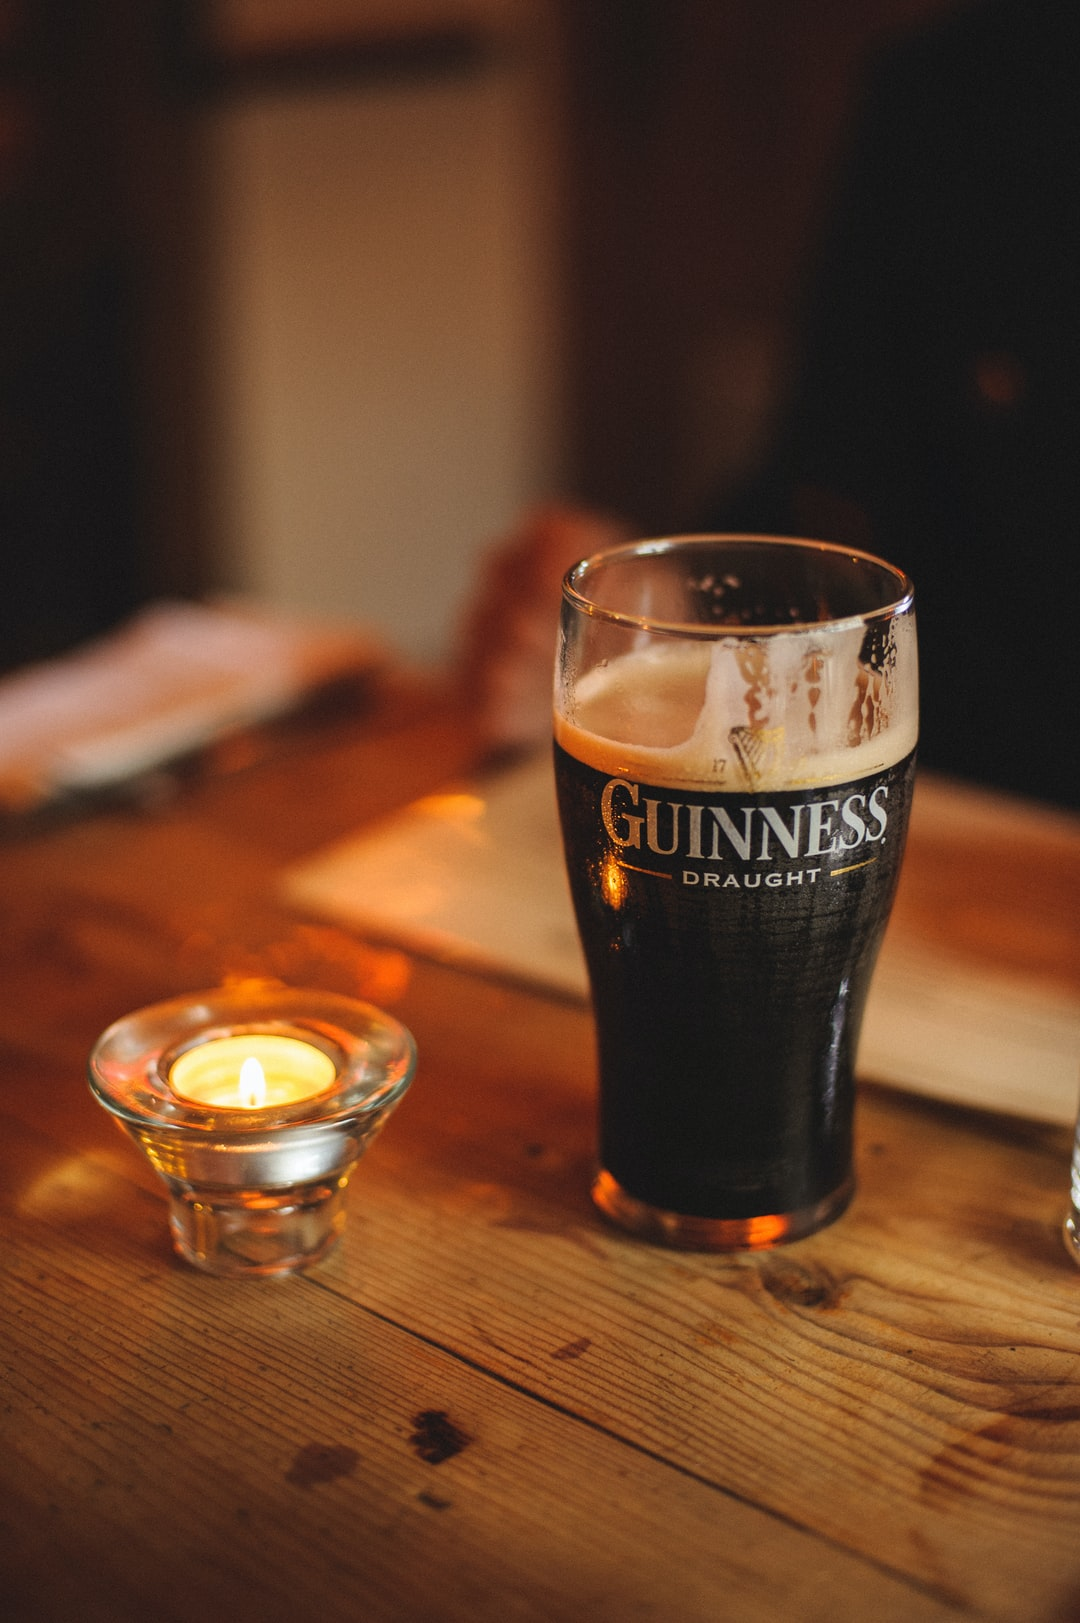 A Guinness Draught beer in a glass next to a candle in an English pub.